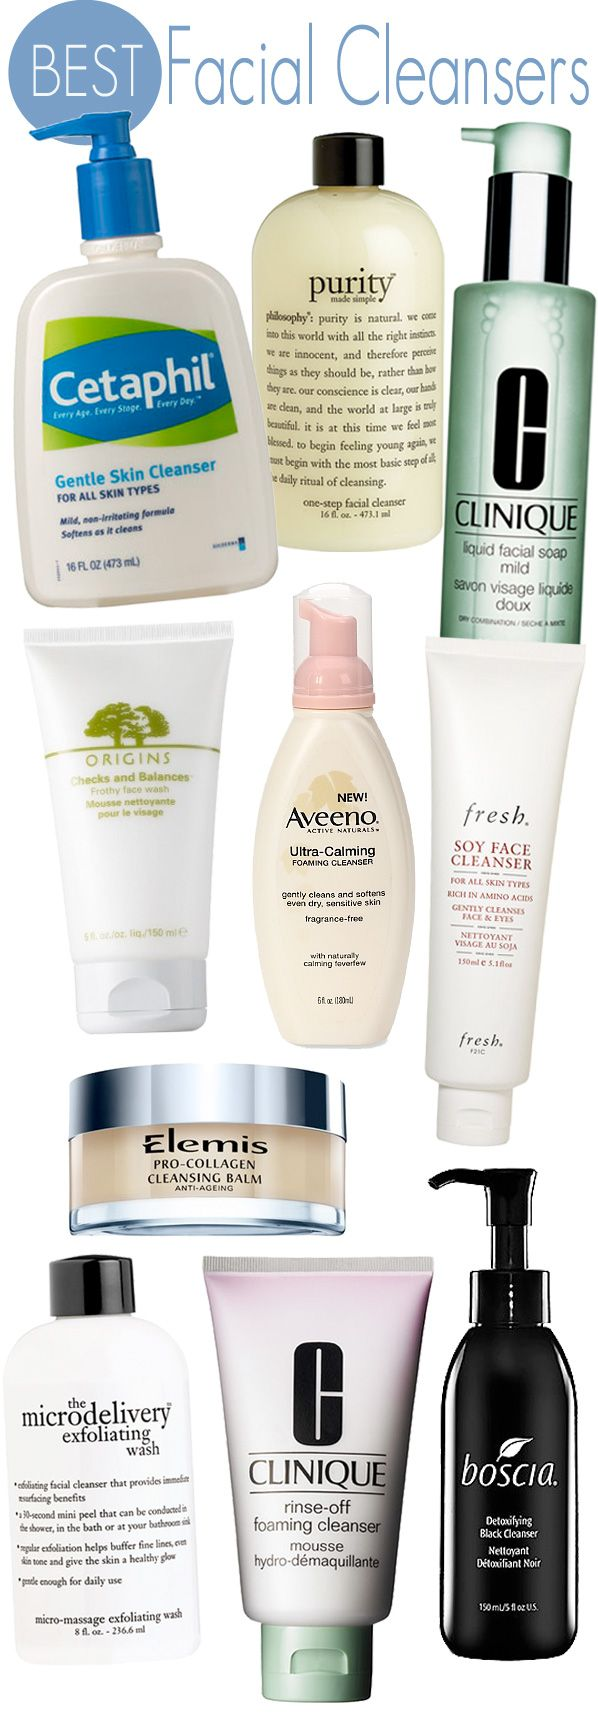 Seldom.. Best rated facial products sorry, does